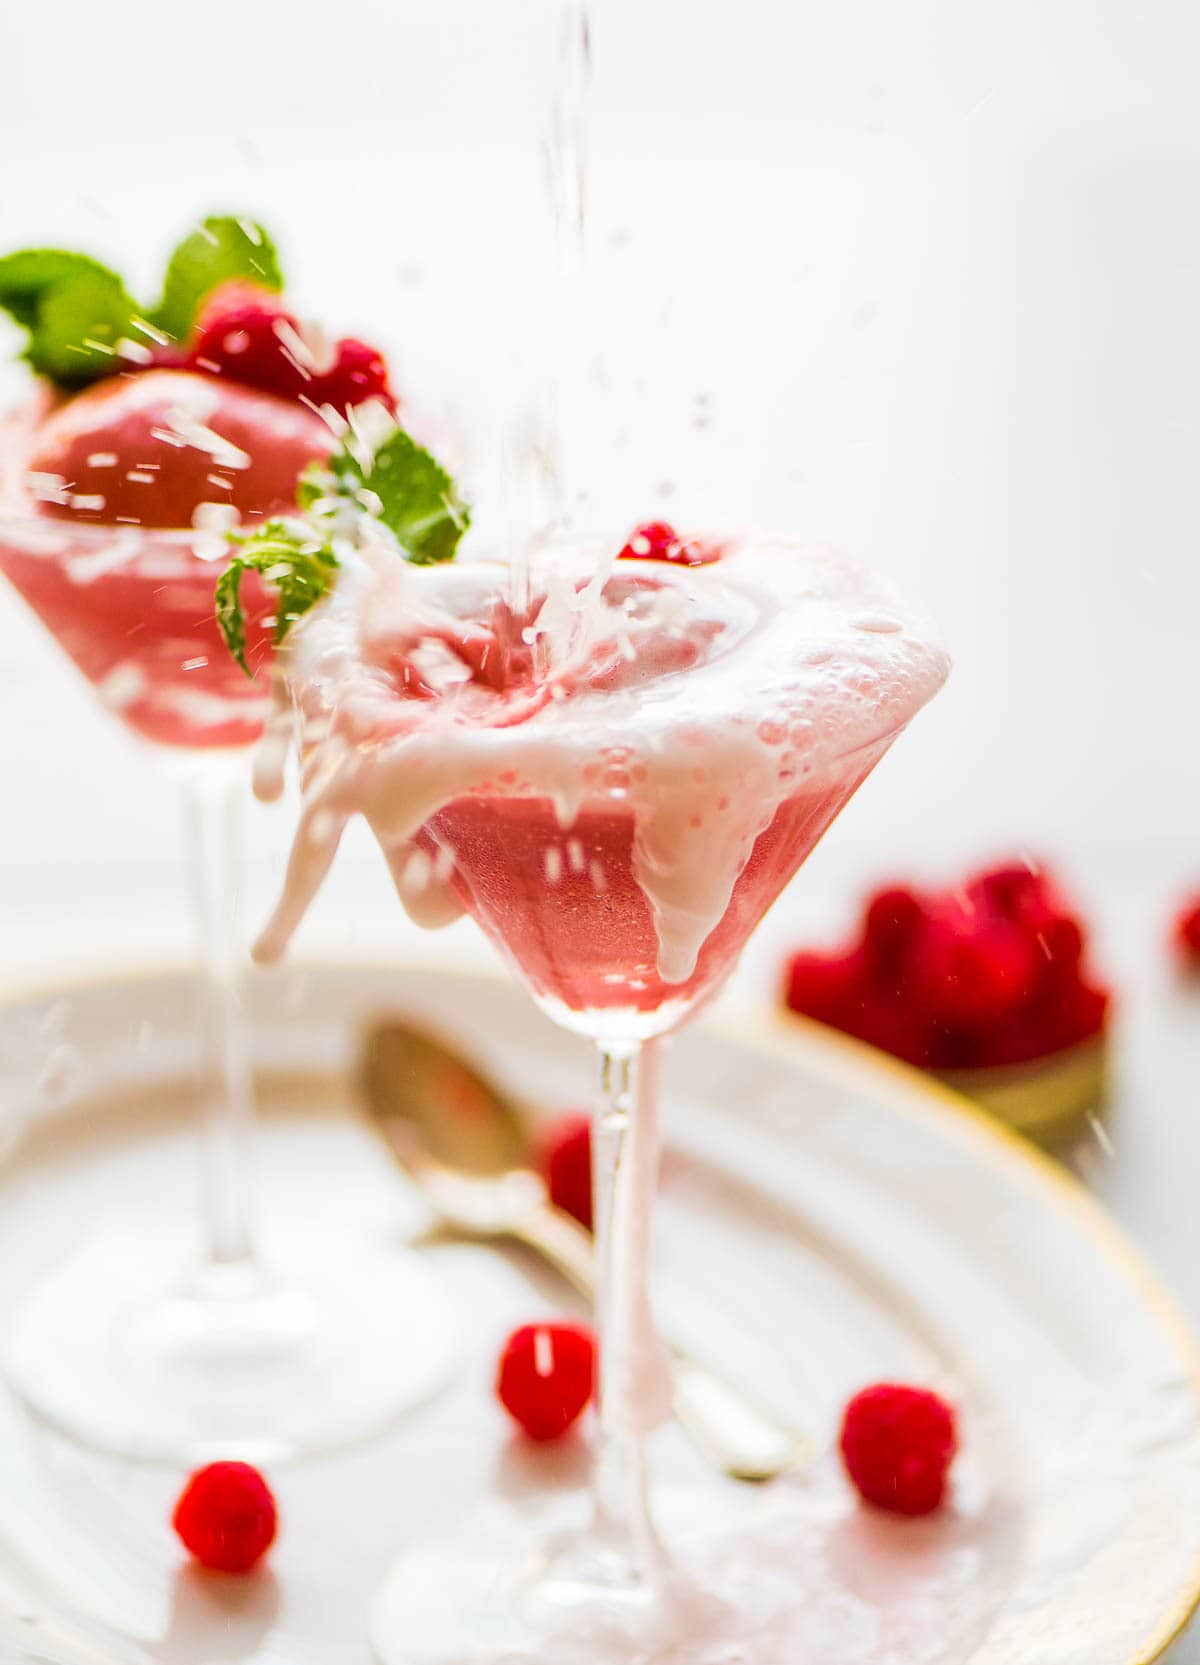 Raspberry Champagne Floats. An easy and fun pink dessert! Perfect for New Year's Eve, bachelorette parties, bridal showers, and more! Recipe at wellplated.com | @wellplated